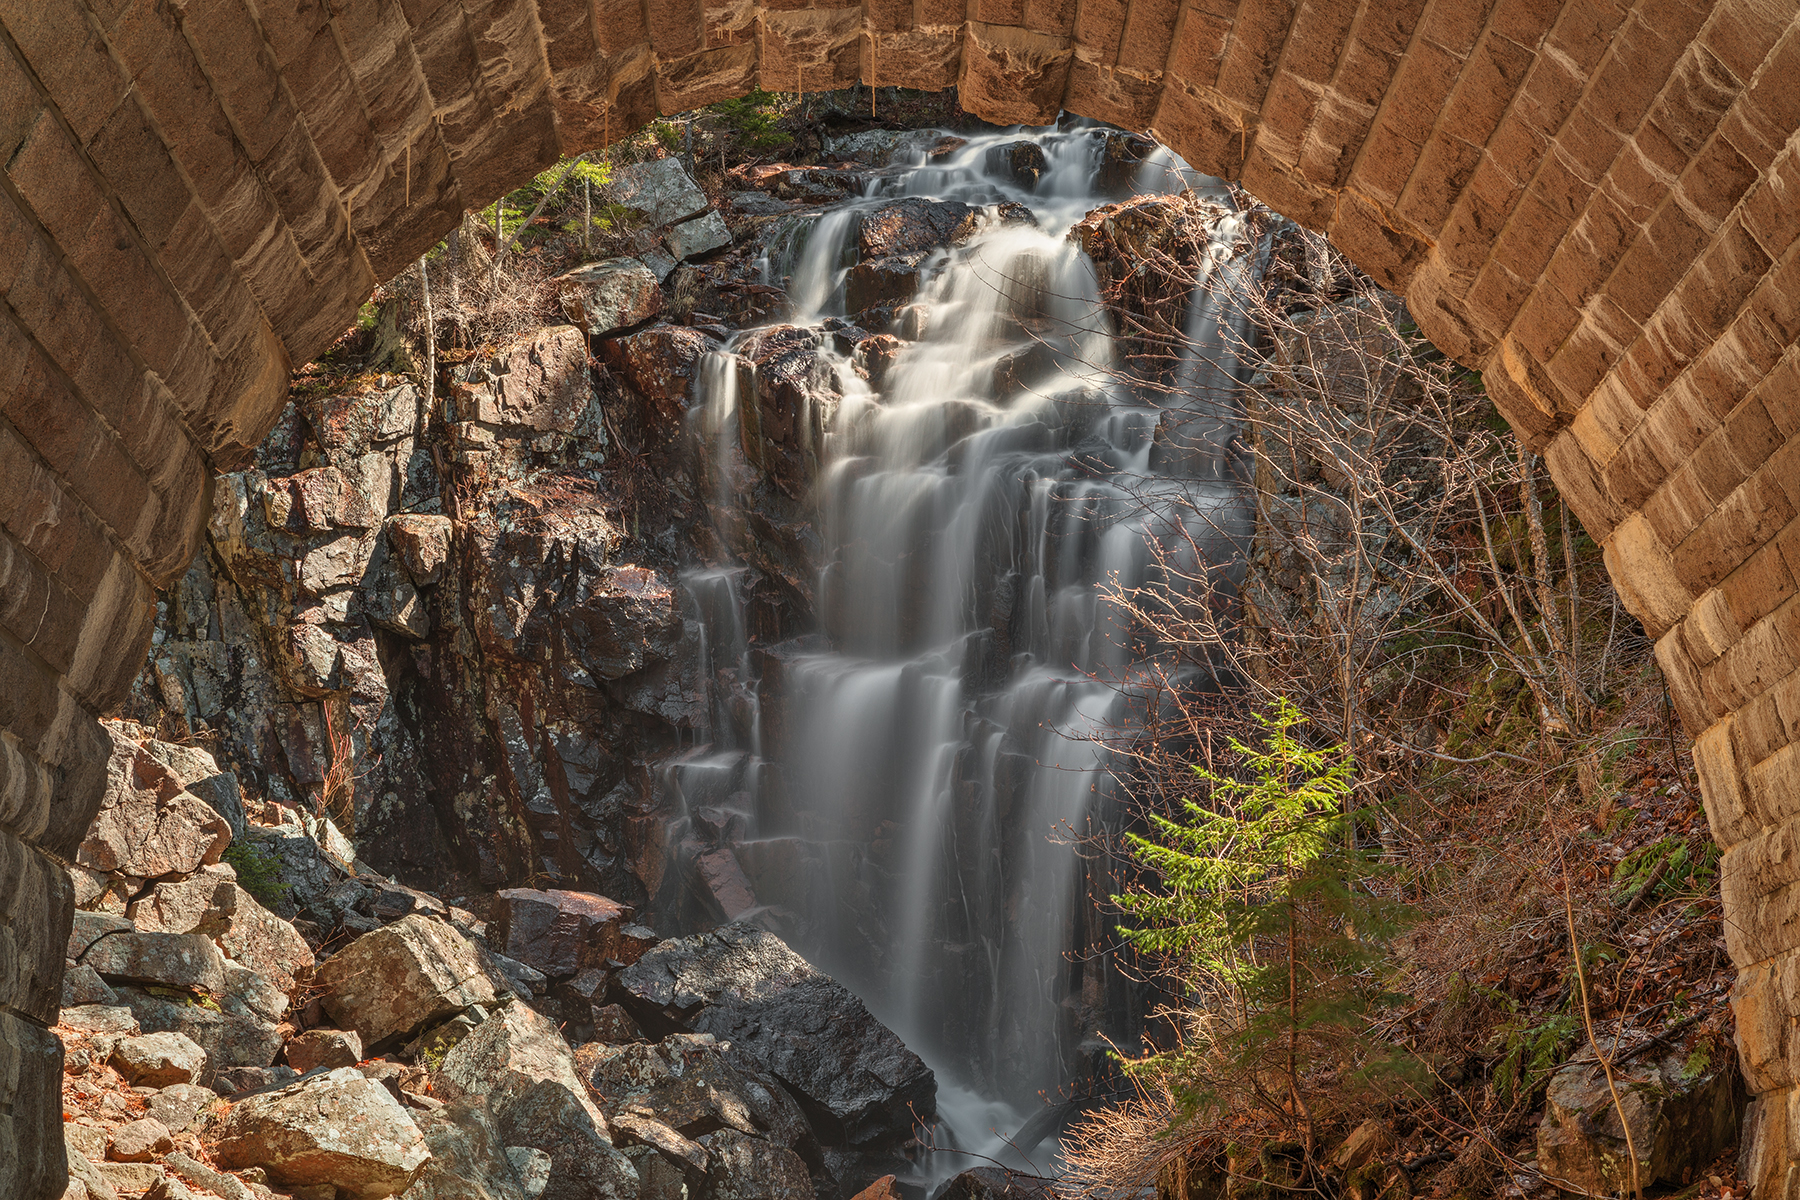 Hadlock arch falls - hdr photo